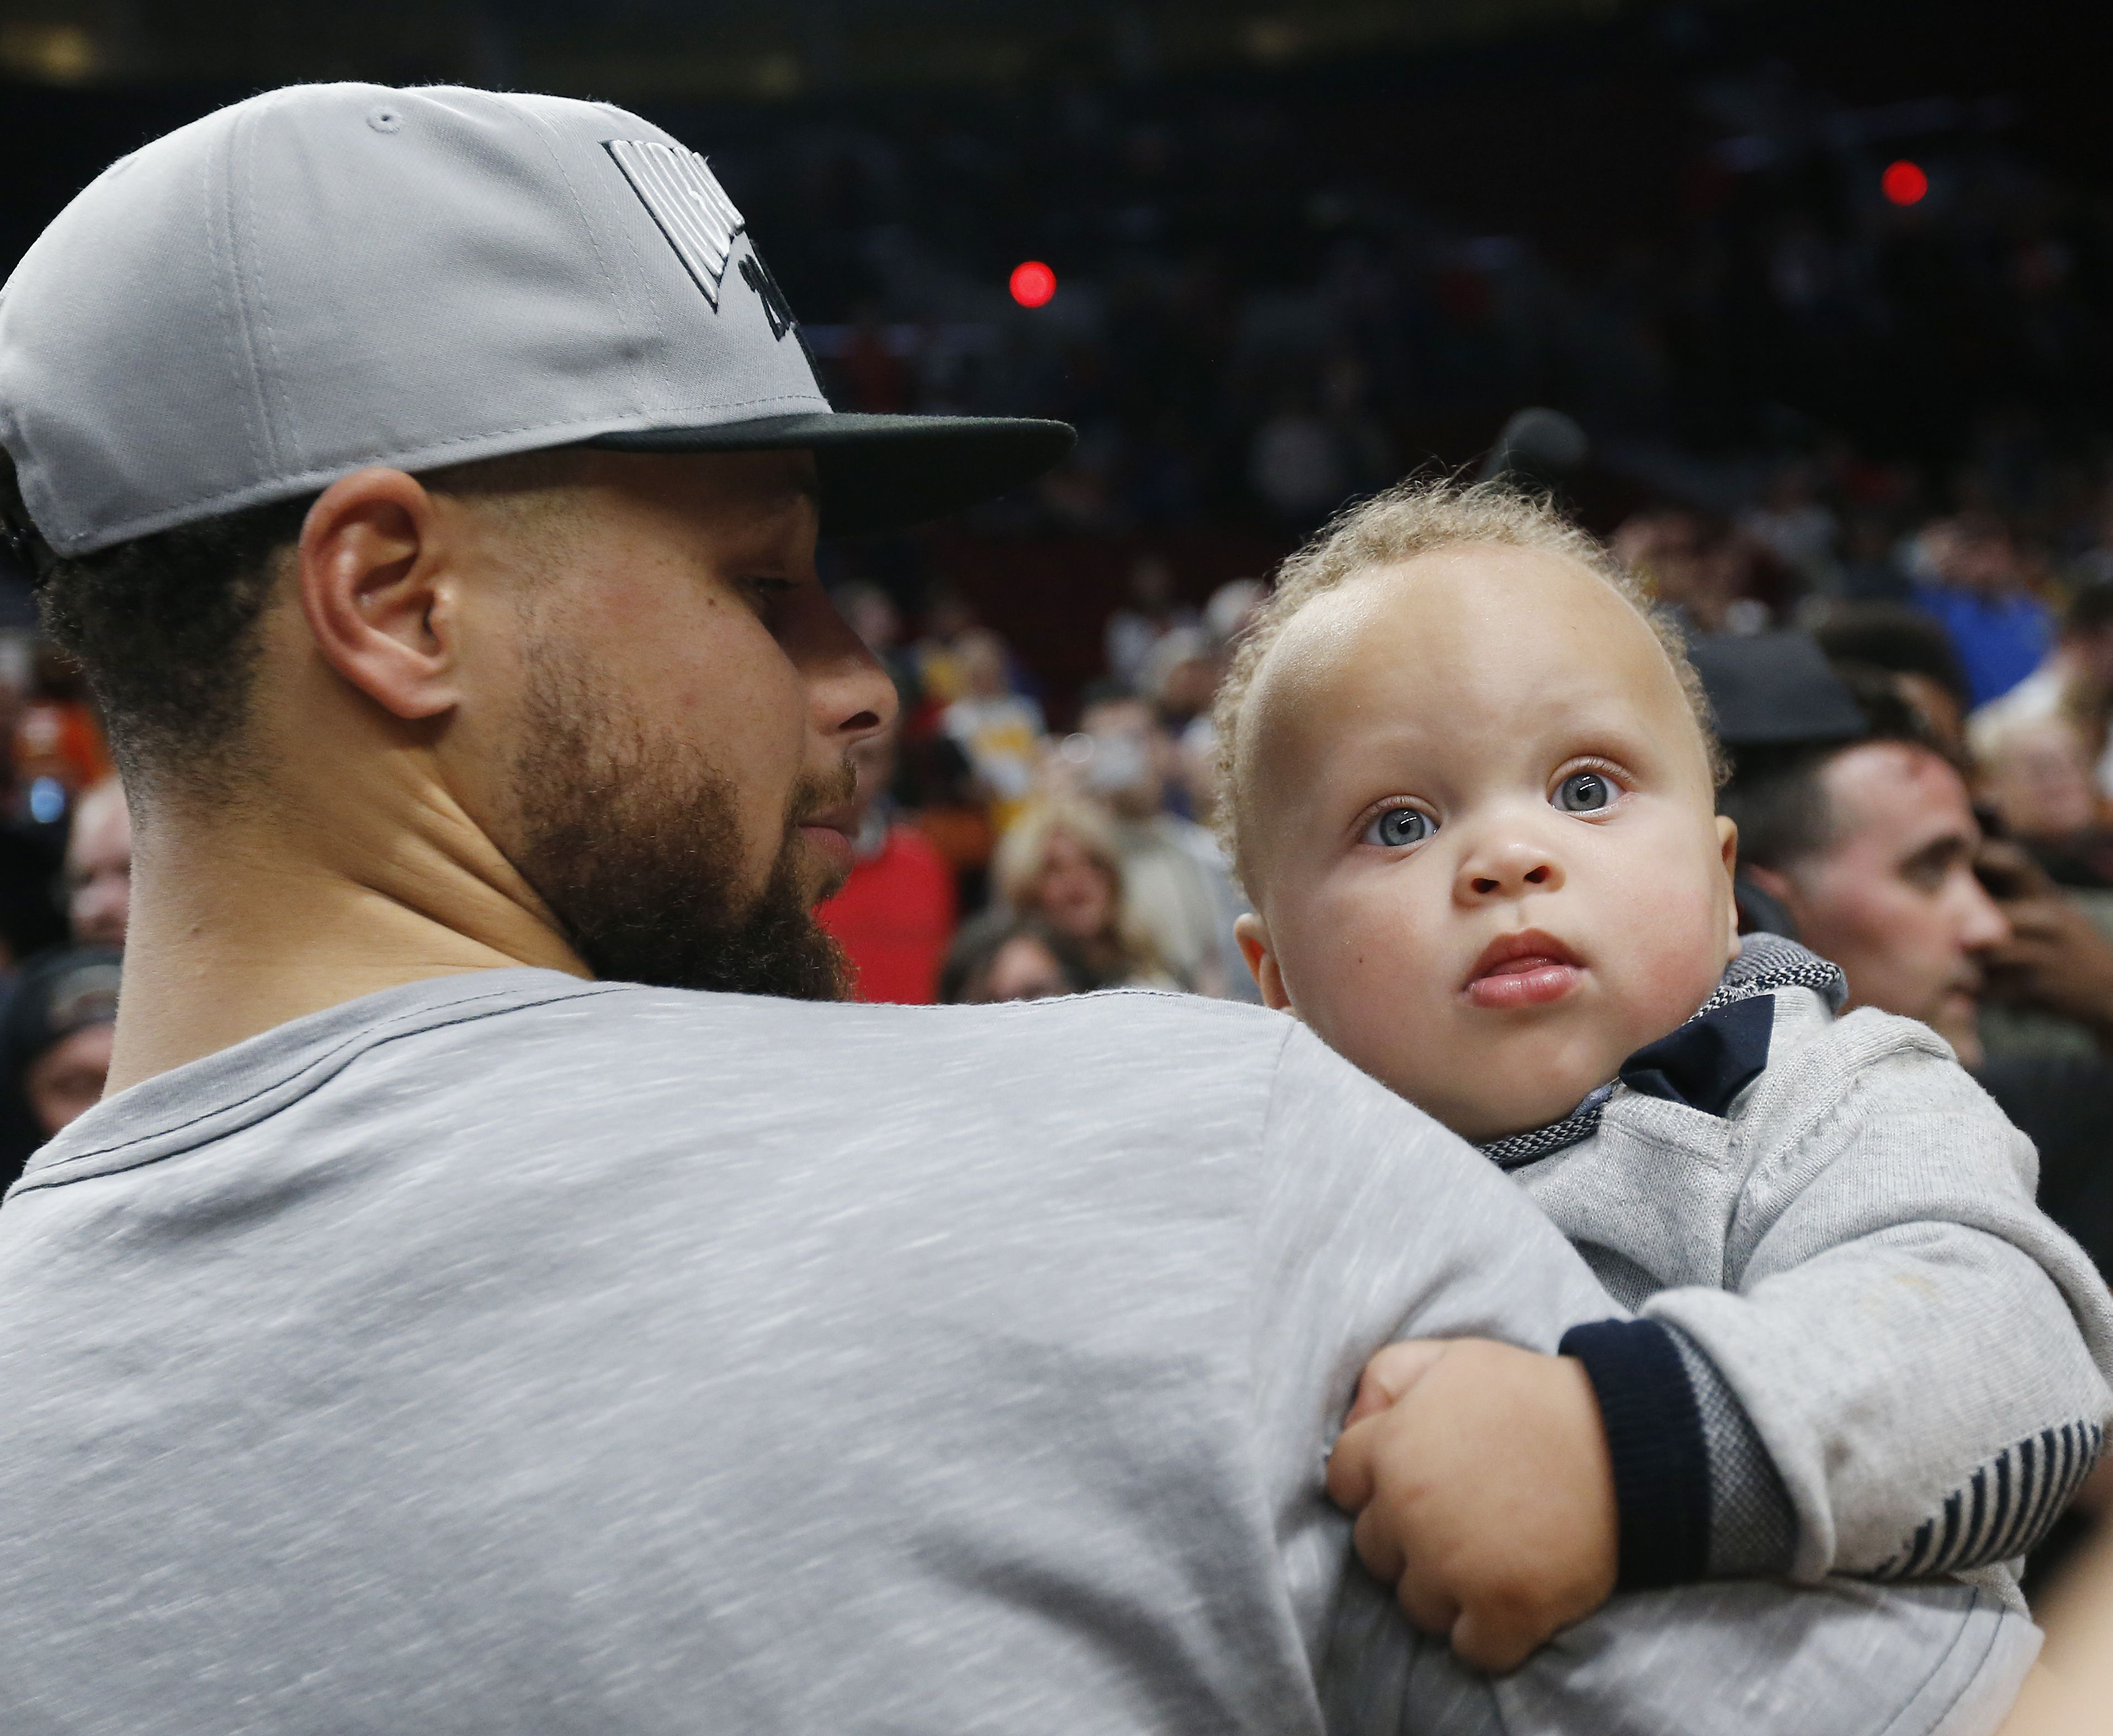 Trolls Are Body Shaming Ayesha Curry's Adorable 10-Month-Old Baby